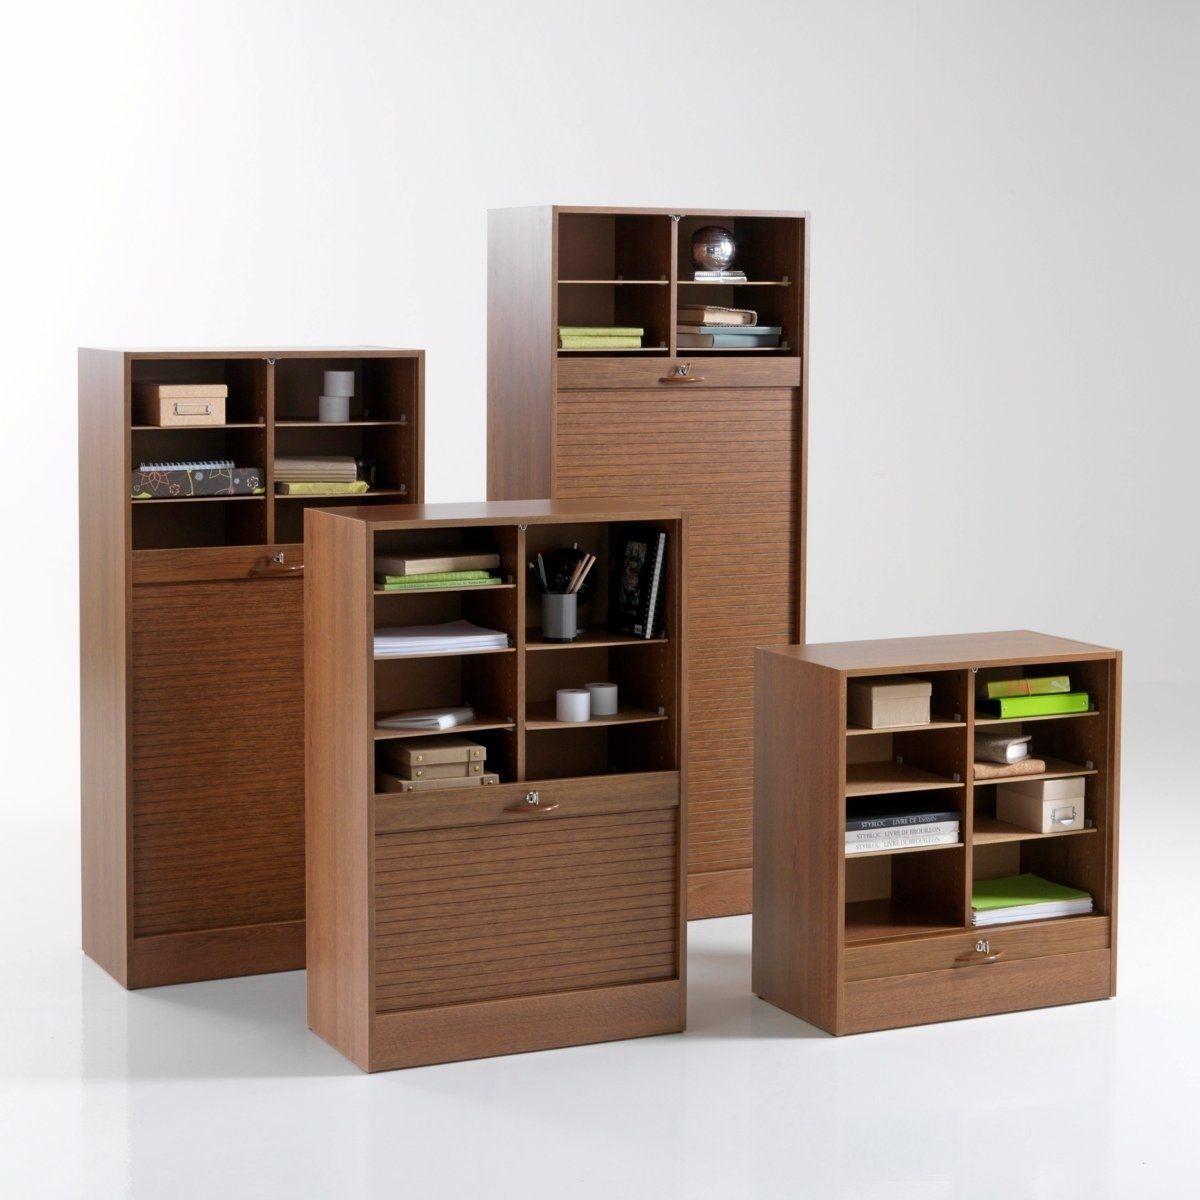 classeur de bureau rideau double tablettes ch ne officia hauteur 80 cm. Black Bedroom Furniture Sets. Home Design Ideas